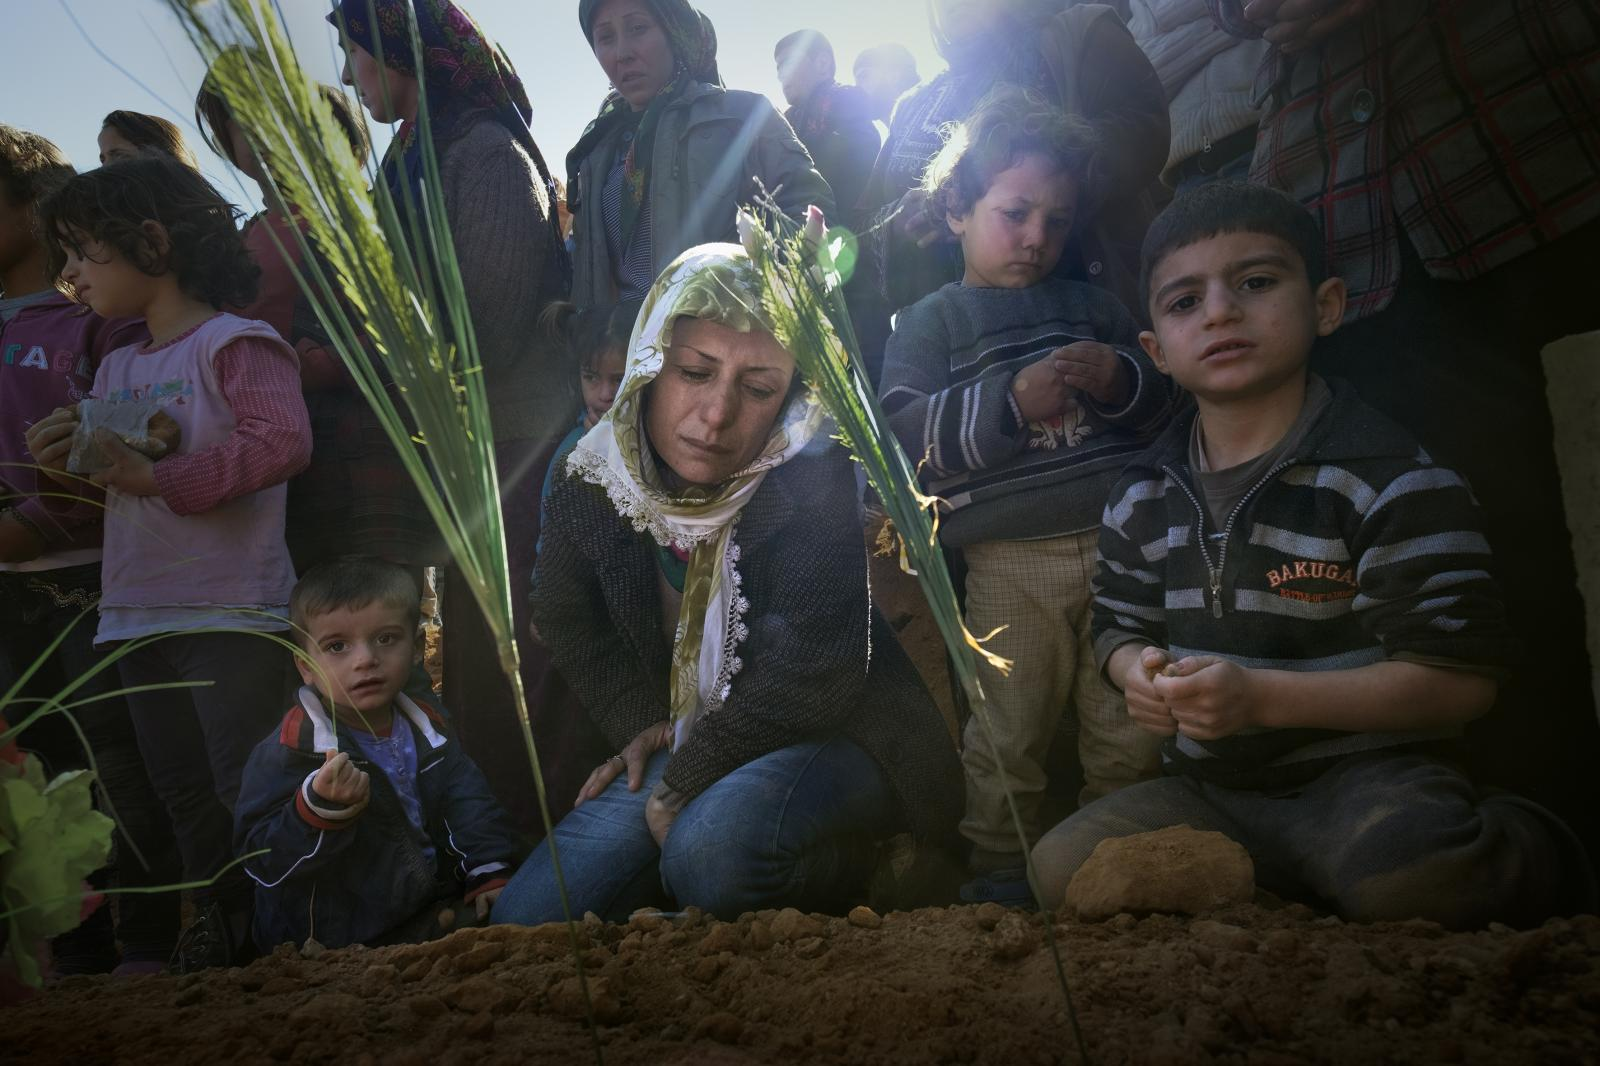 A Kurdish woman and her children weep alongside the grave of her husband , killed in the fighting to liberate the city of Kobane (Syria, 2015)